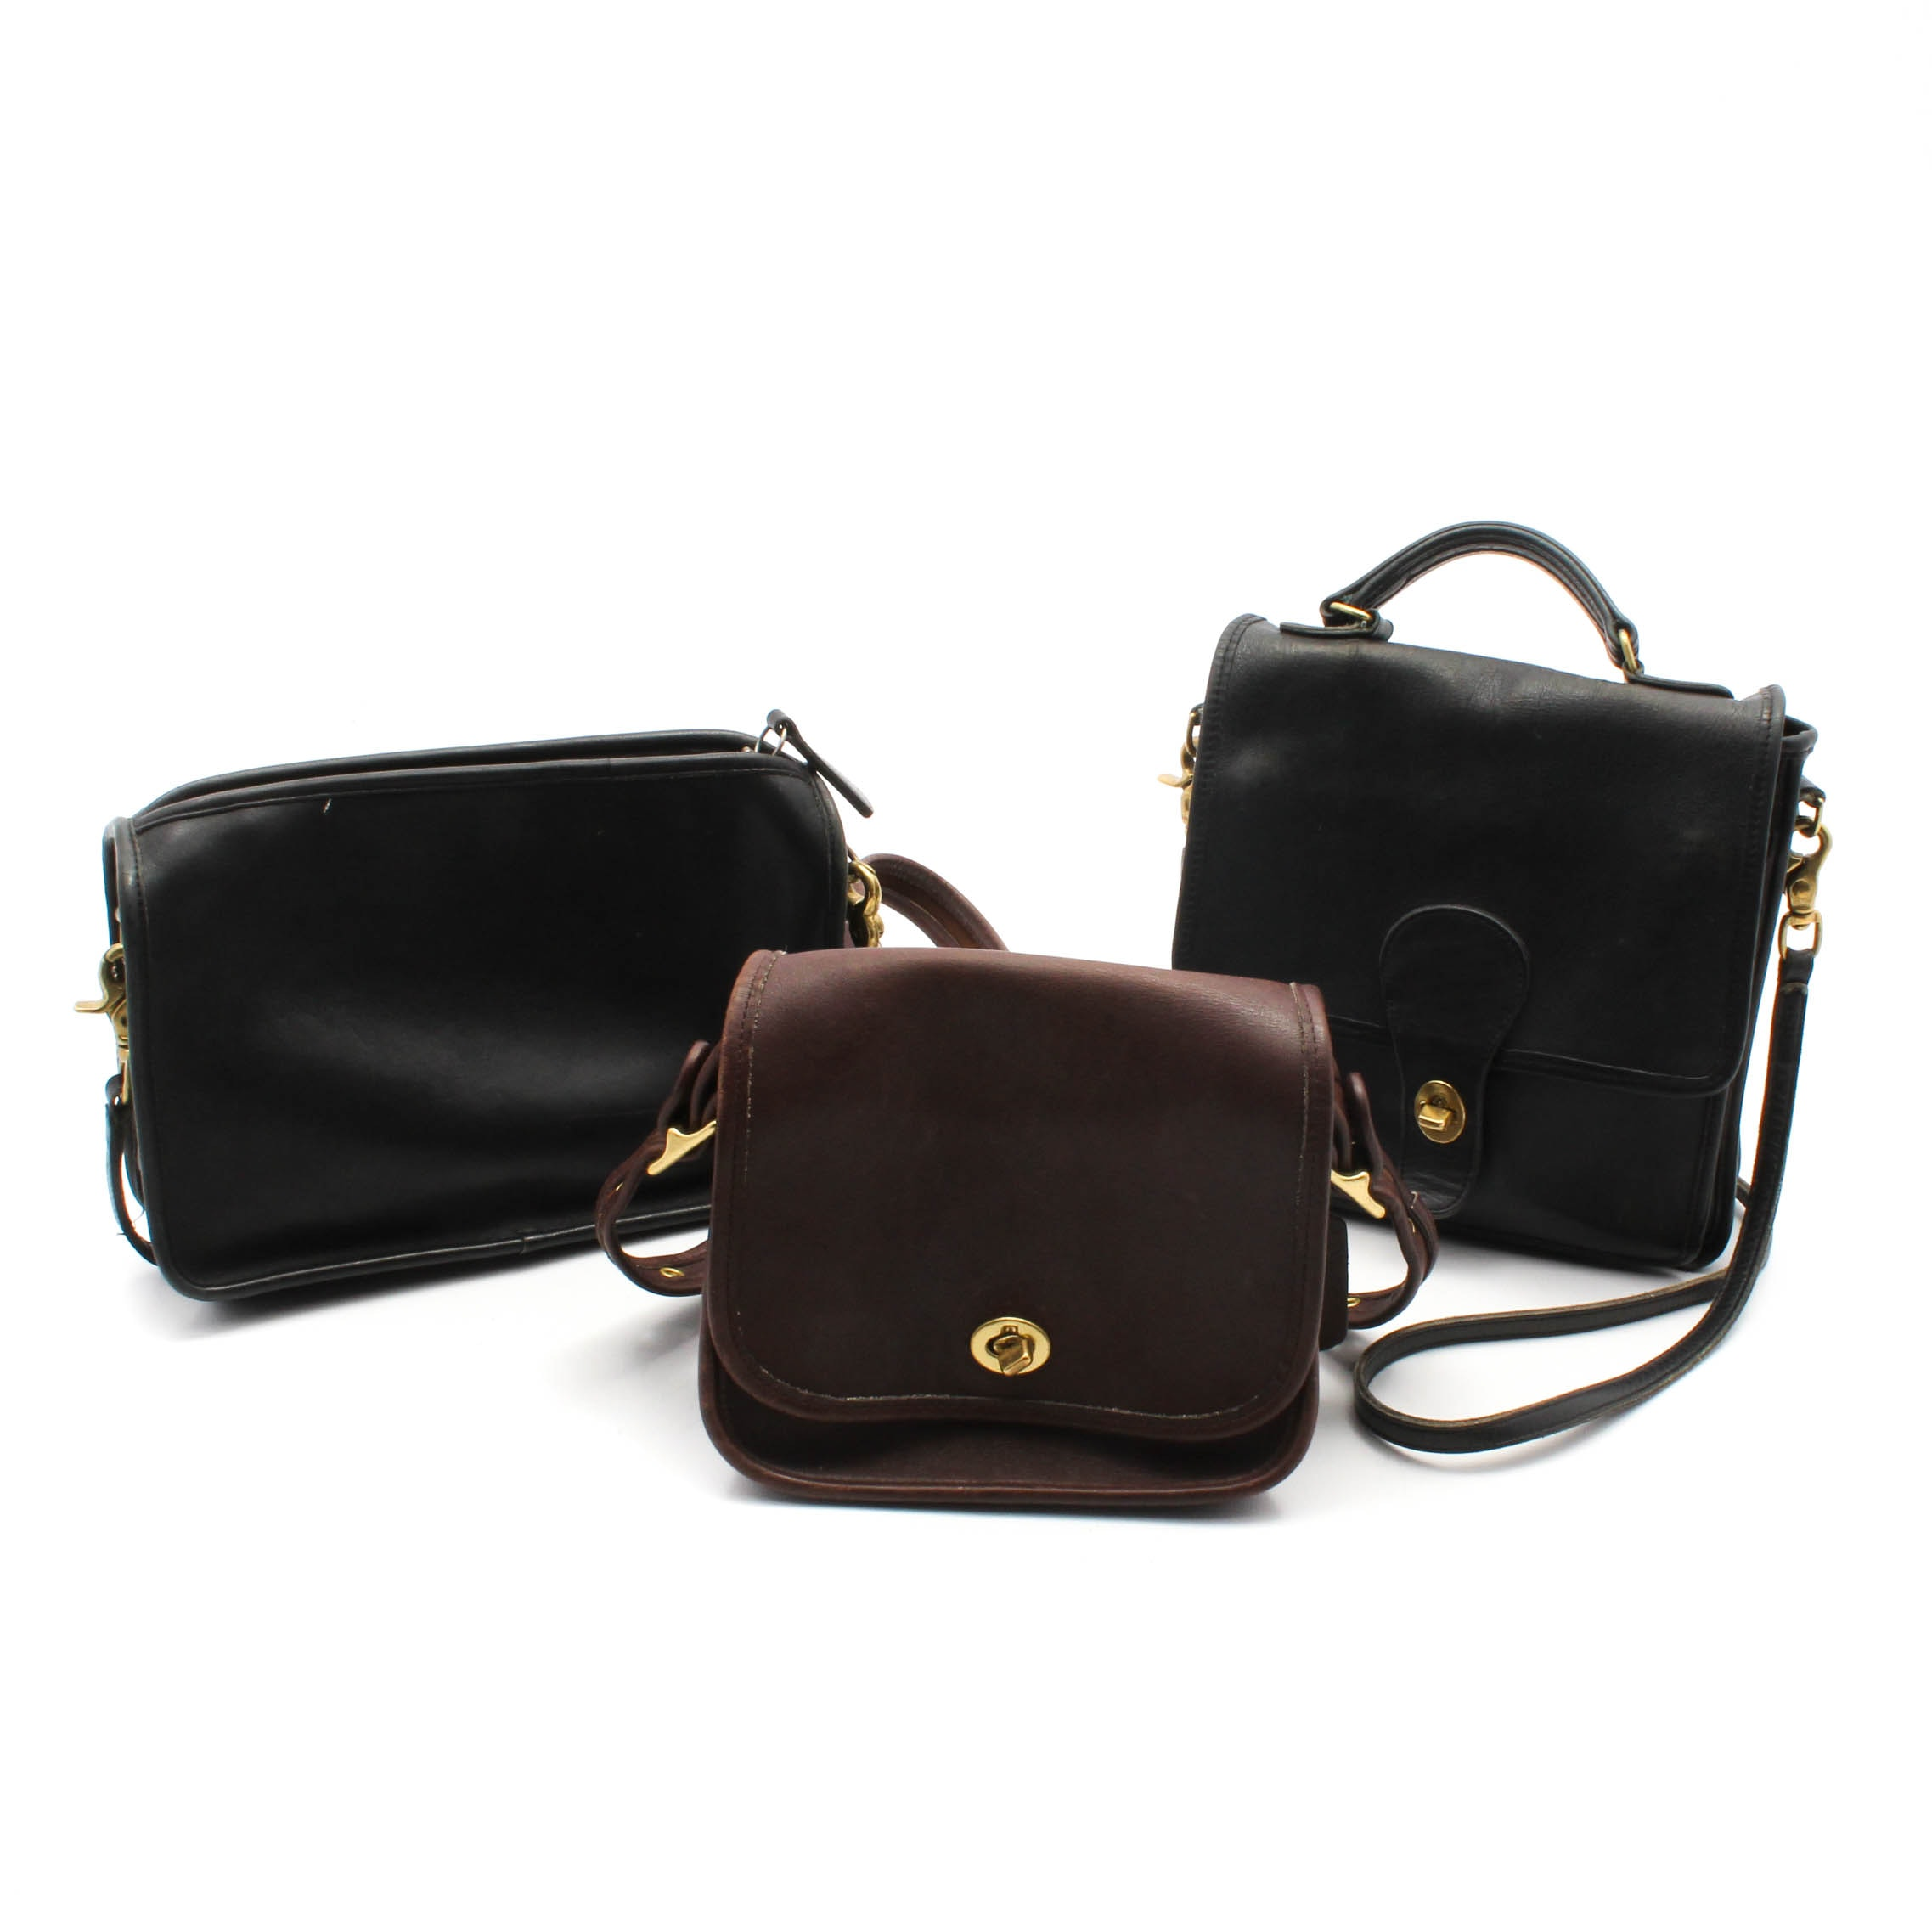 Vintage Coach Leather Handbags, Made in United States